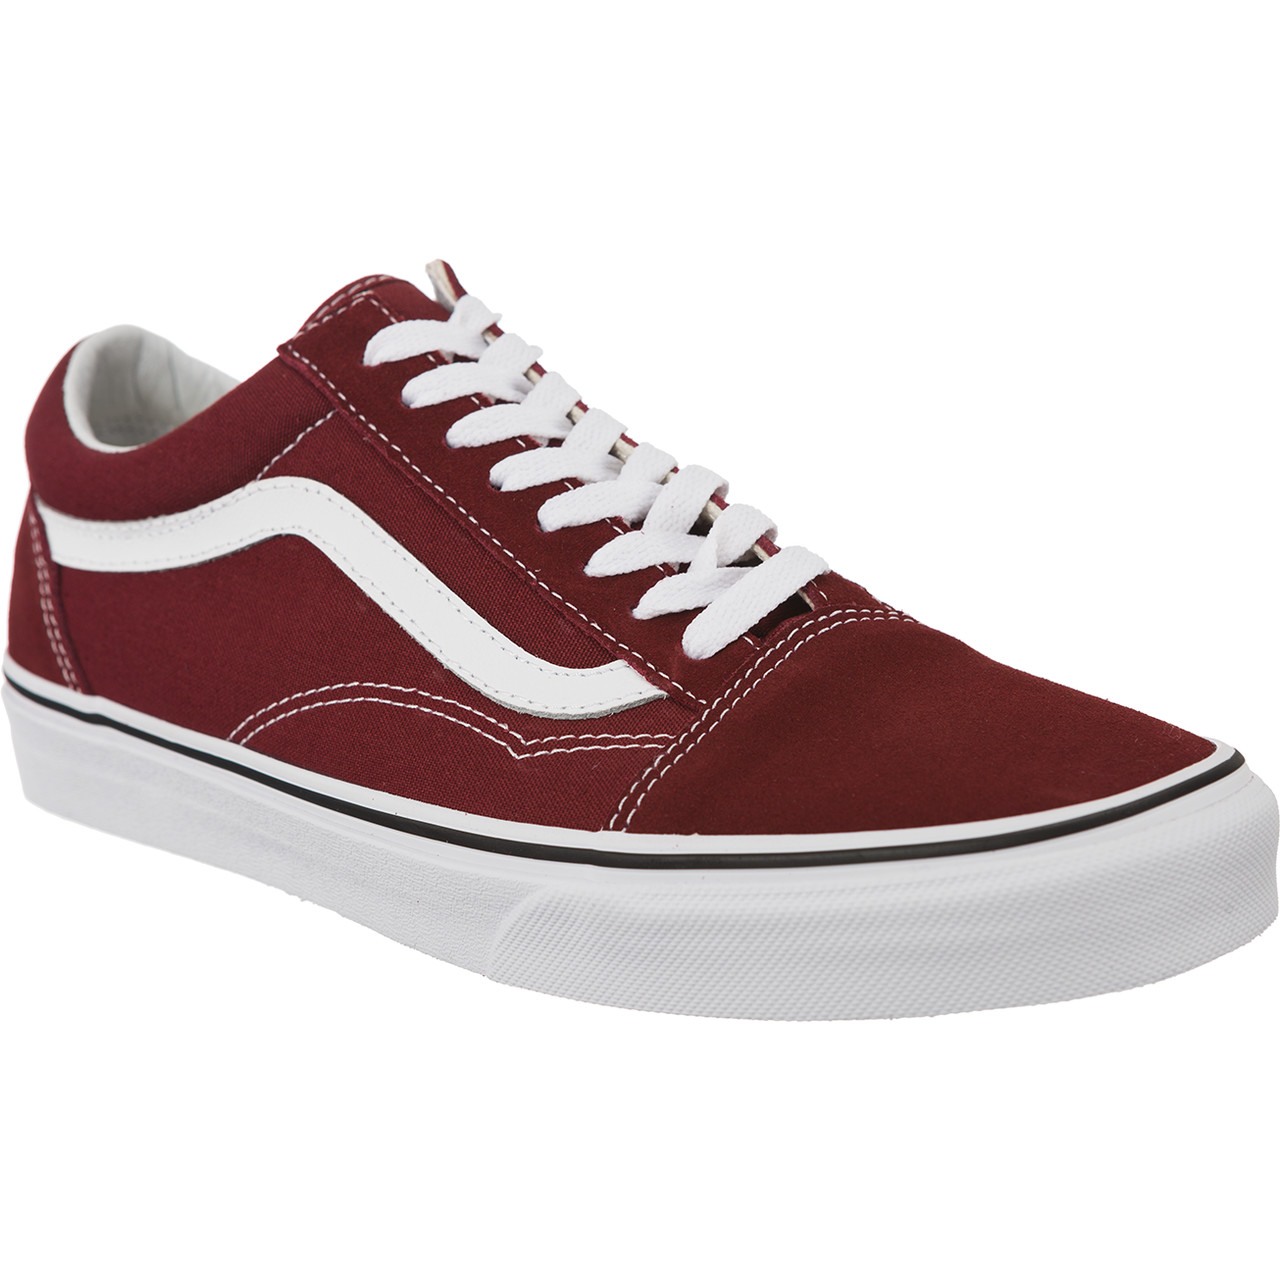 eastend vans old skool